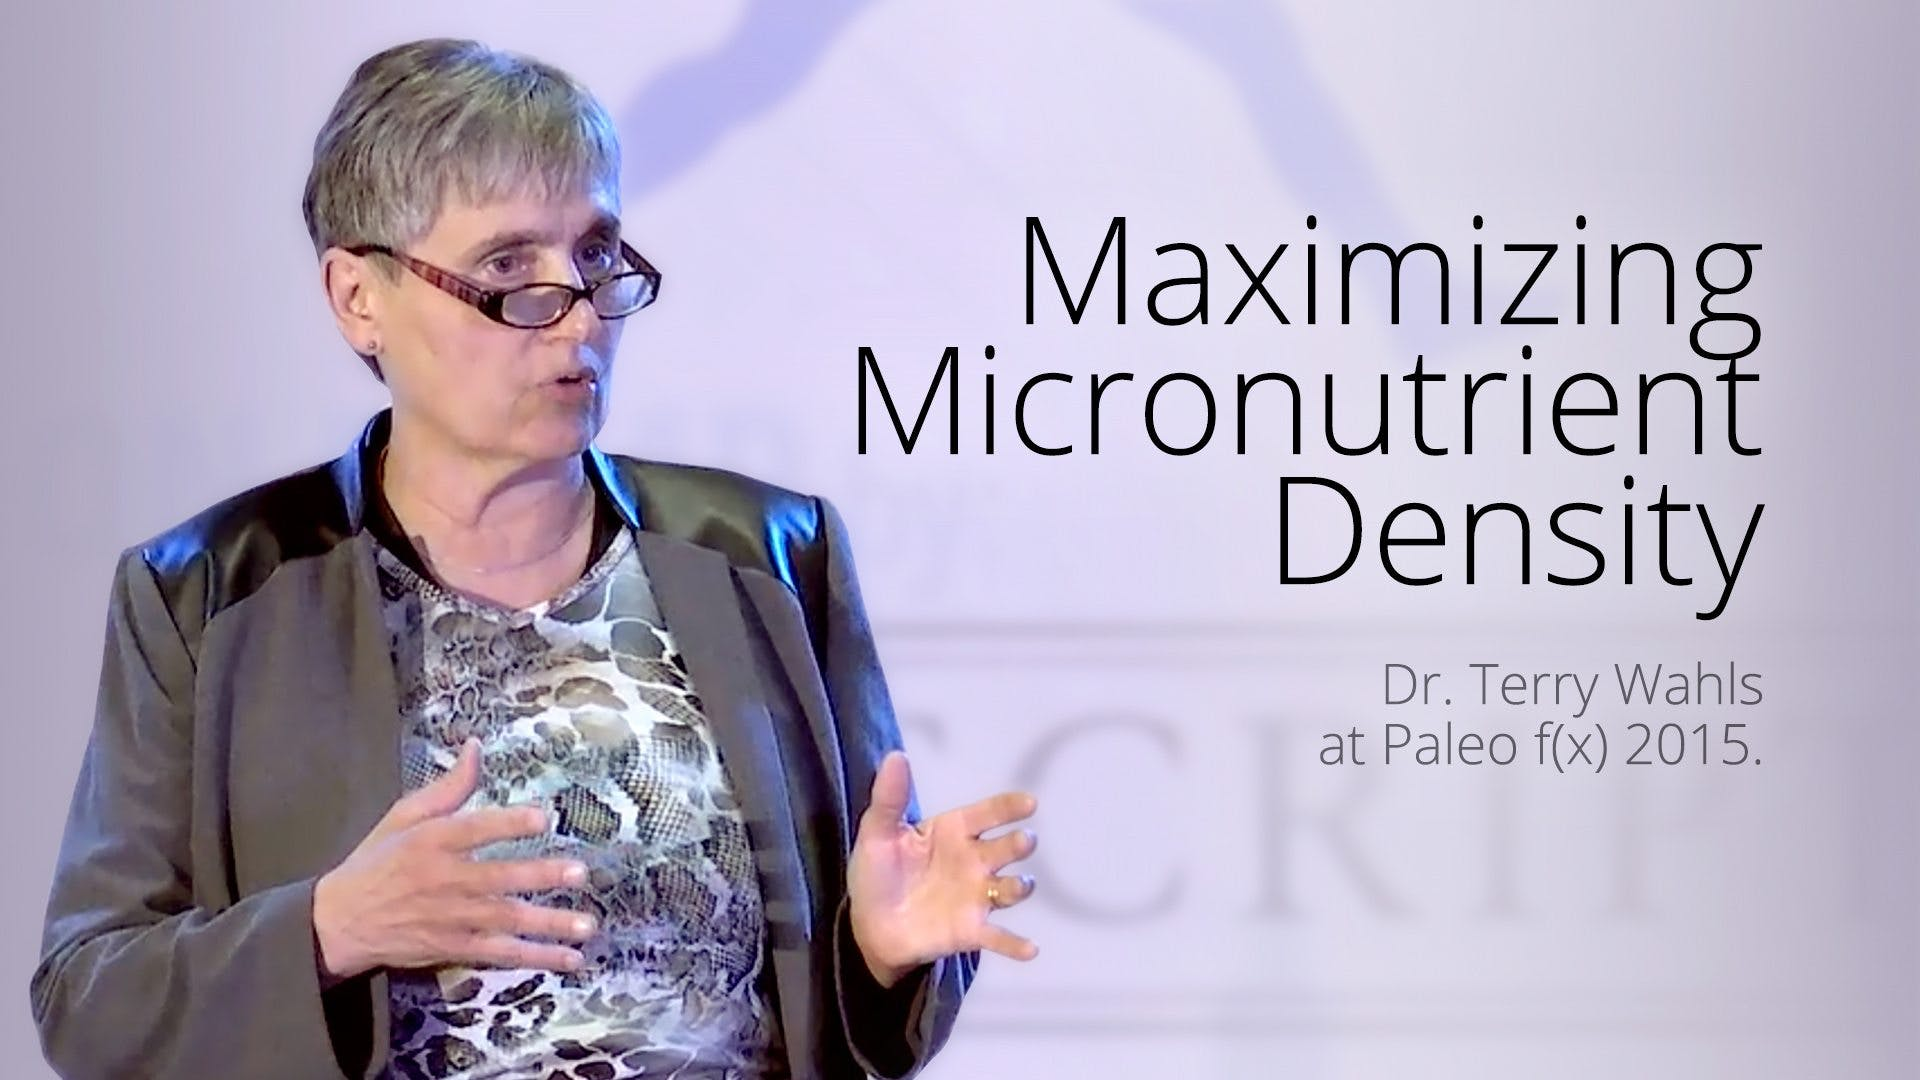 Maximizing Micronutrient Density – Dr. Terry Wahls